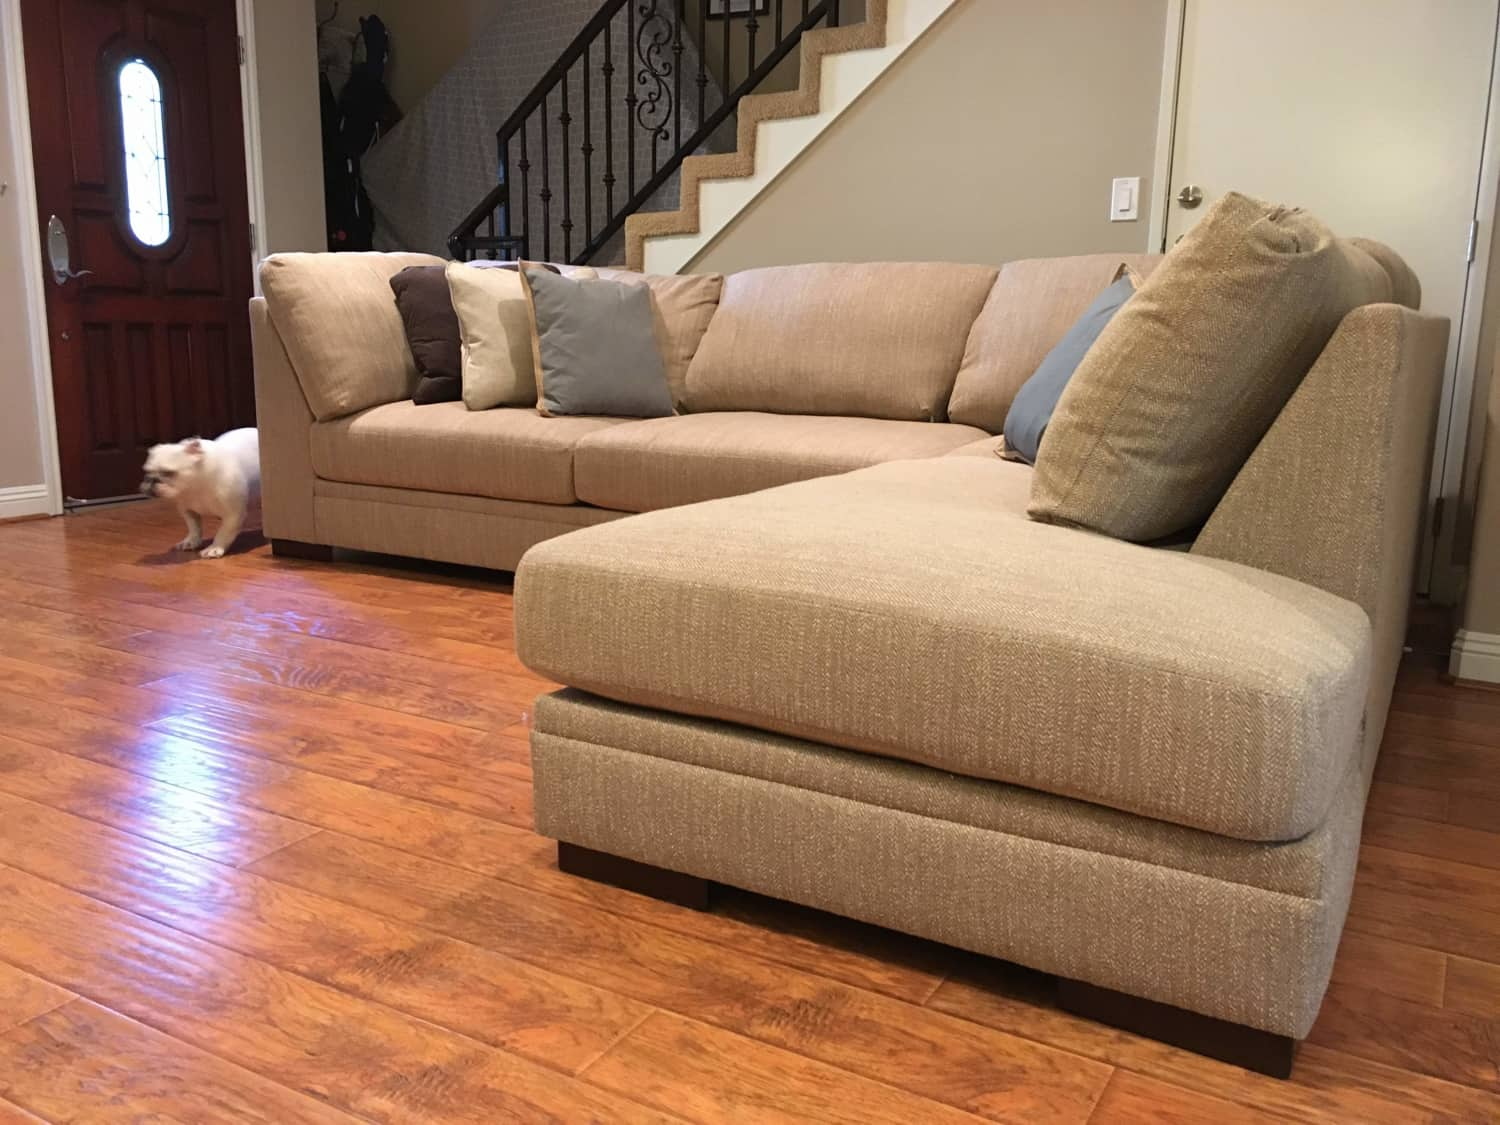 Stupendous New 2 Piece Sectional Couch Malakoff Apartment Ibusinesslaw Wood Chair Design Ideas Ibusinesslaworg